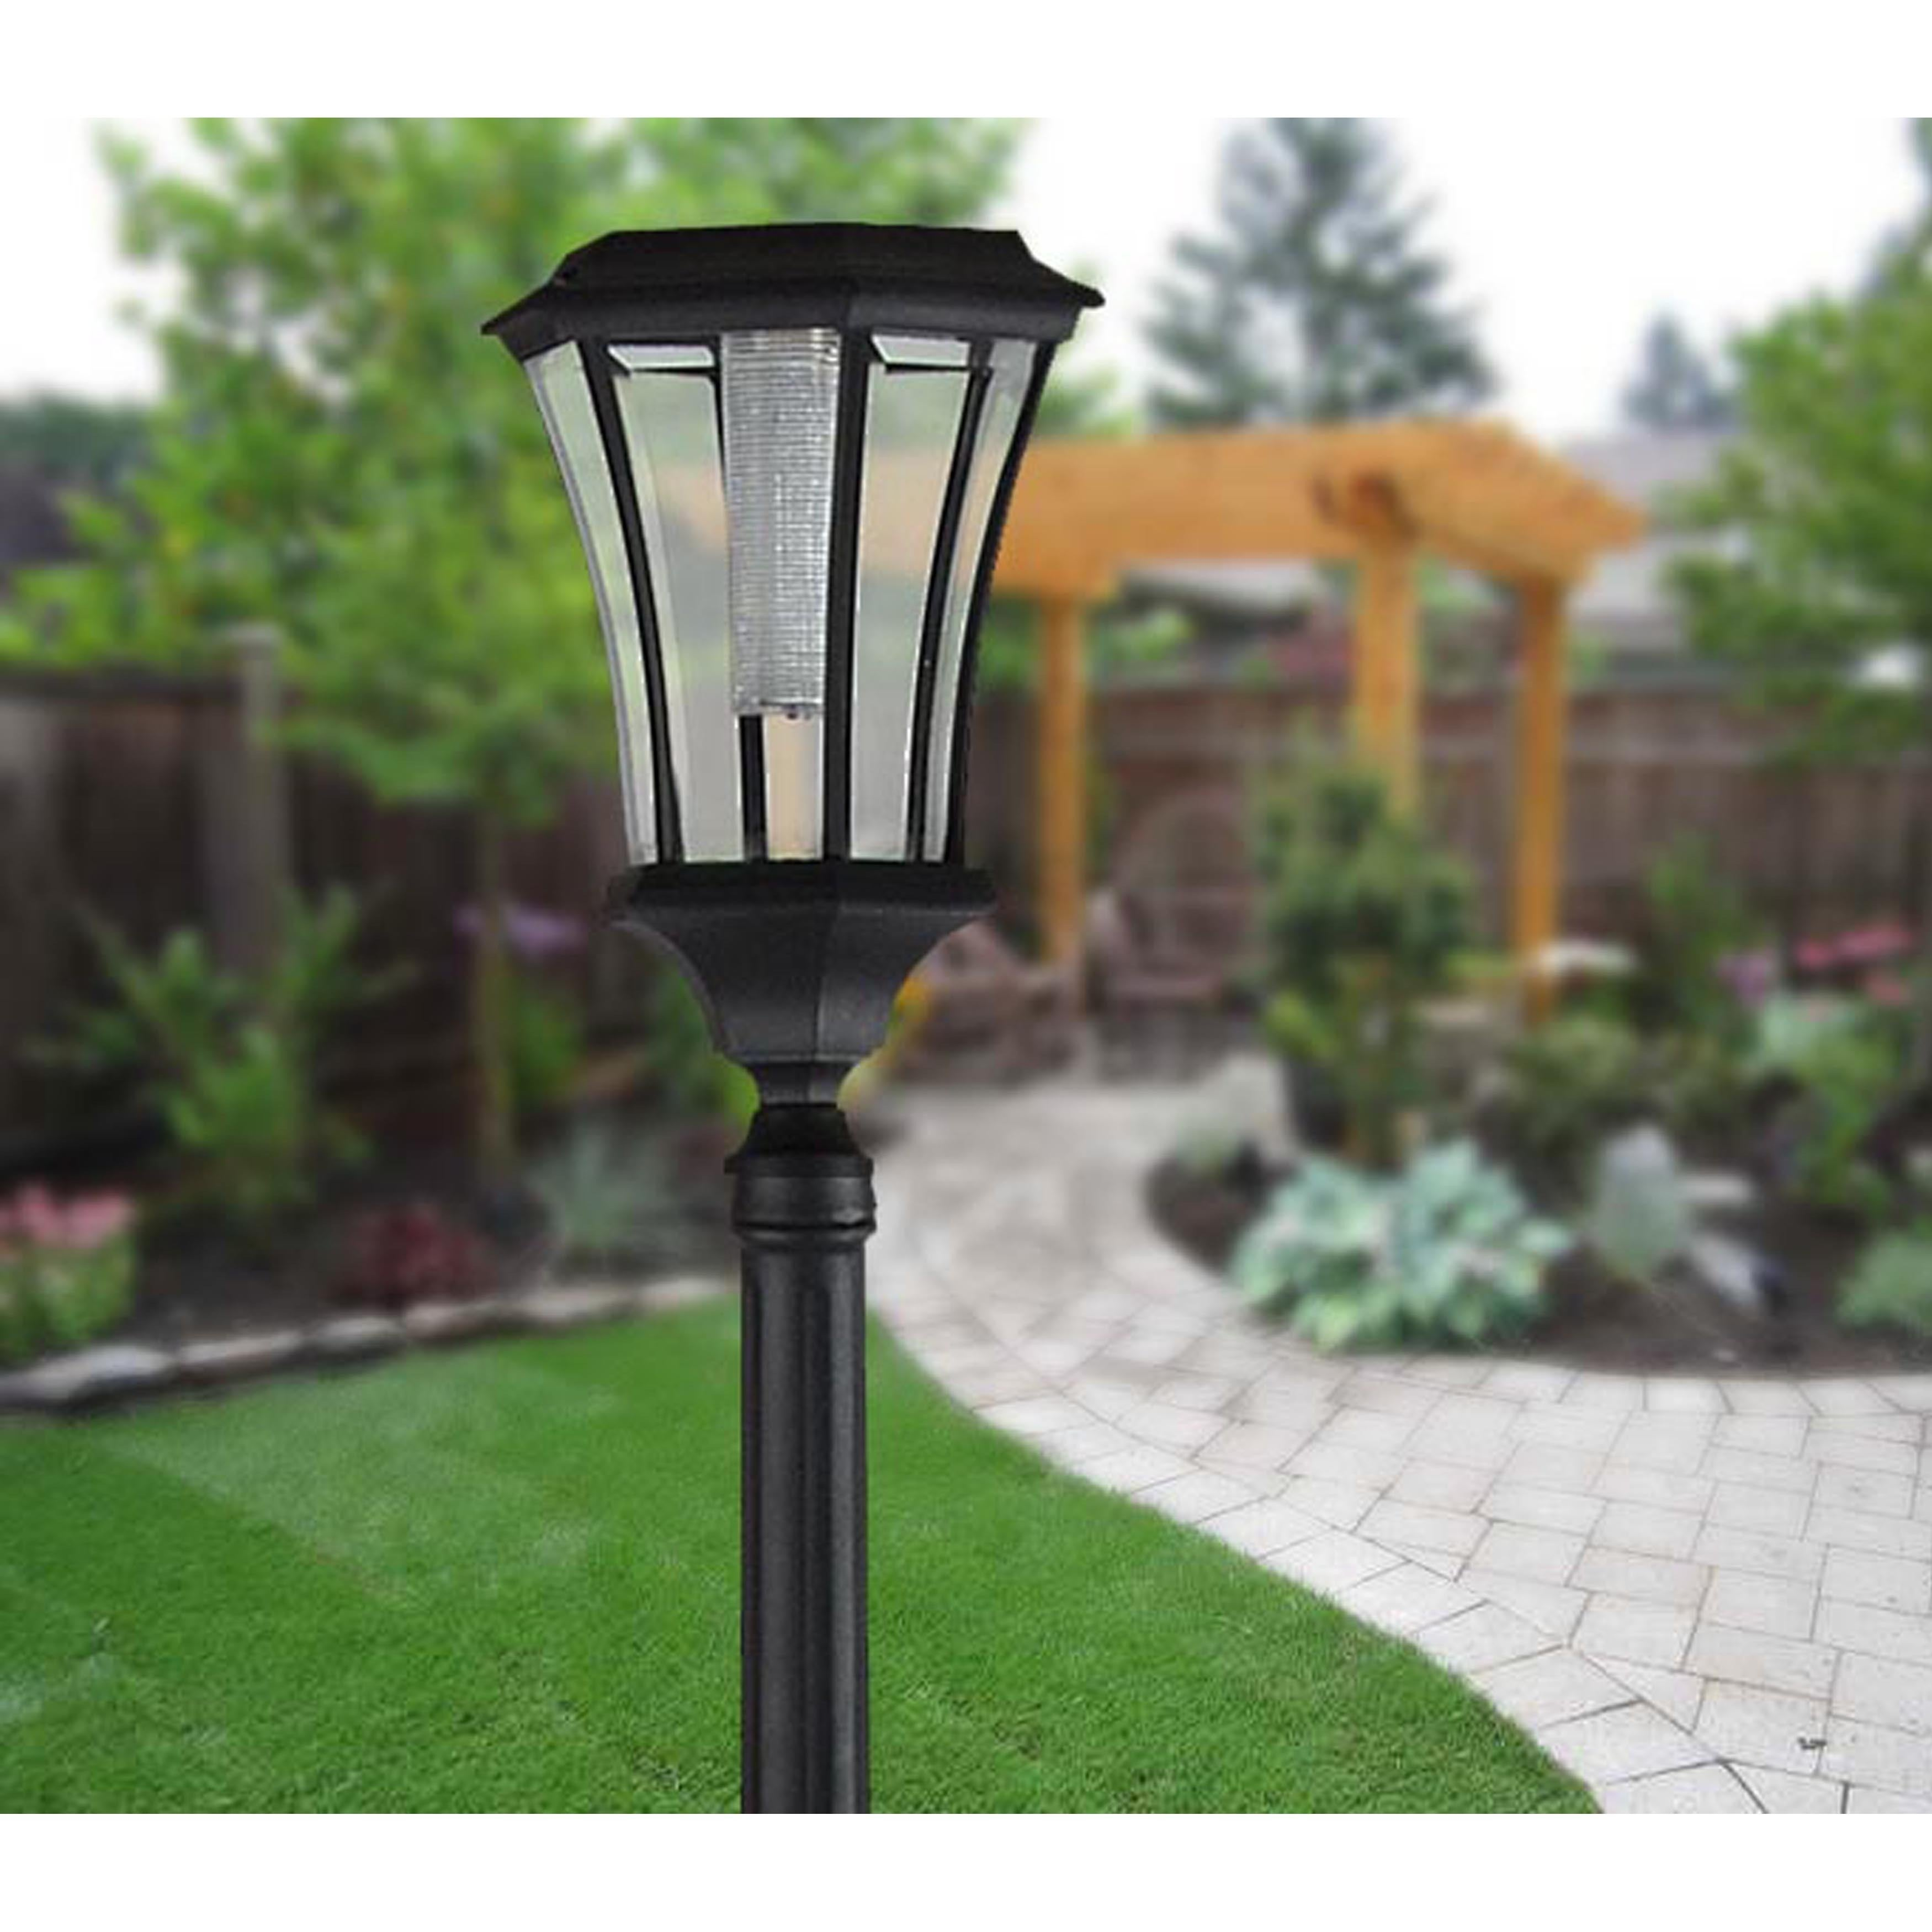 Global Abigail Solar Lamp Post with Planter (302001), Bla...